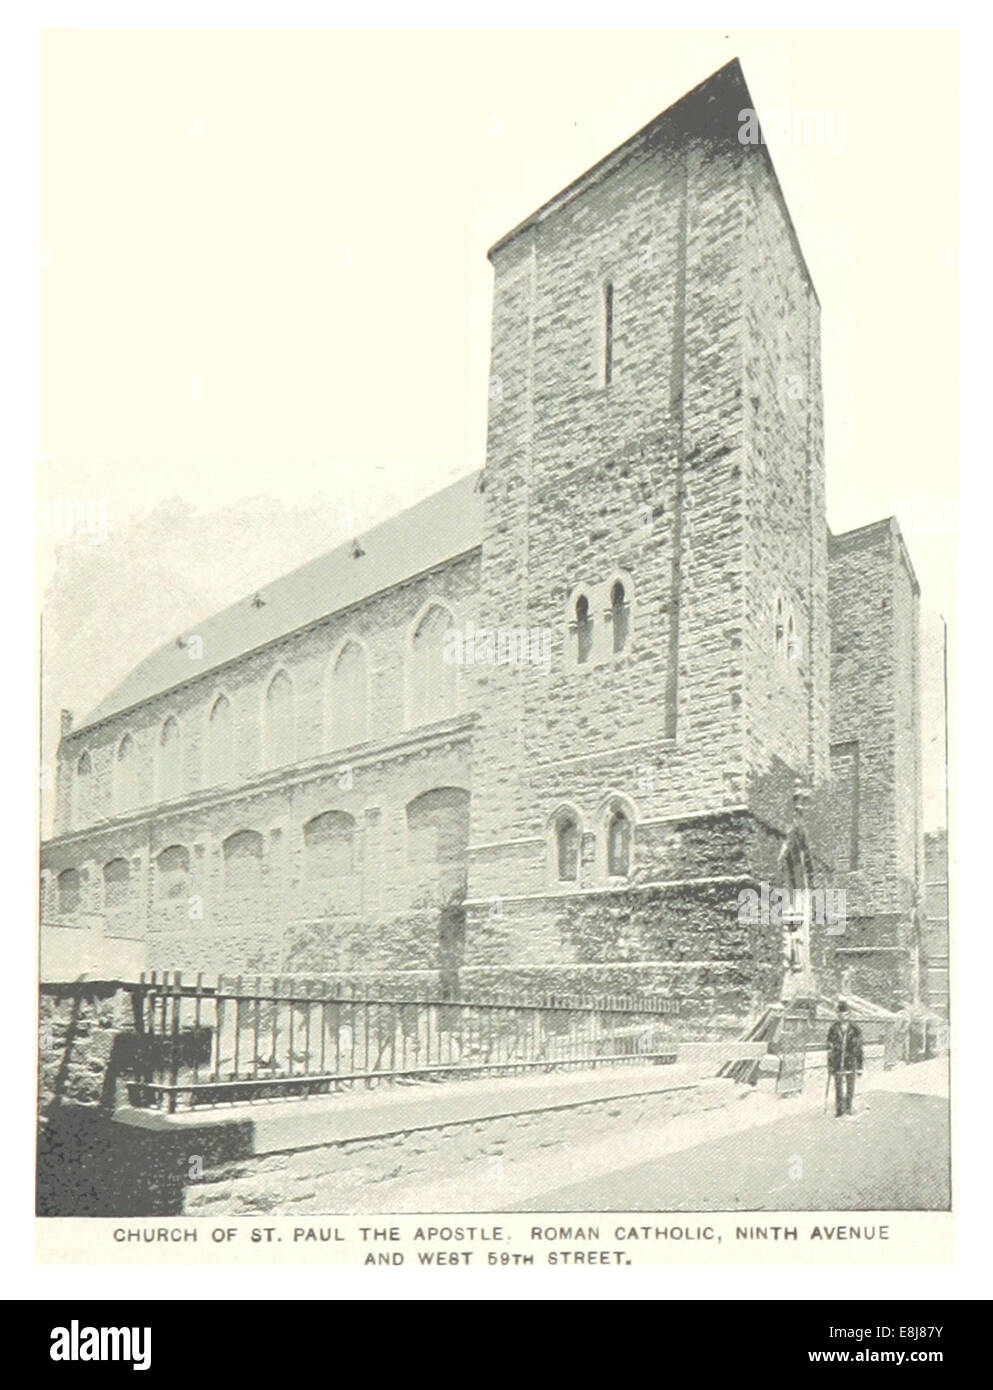 (King1893NYC) pg403 CHURCH OF ST.PAUL THE APOSTEL, ROMAN CATHOLIC, 9TH AVENUE and 59TH STREET - Stock Image